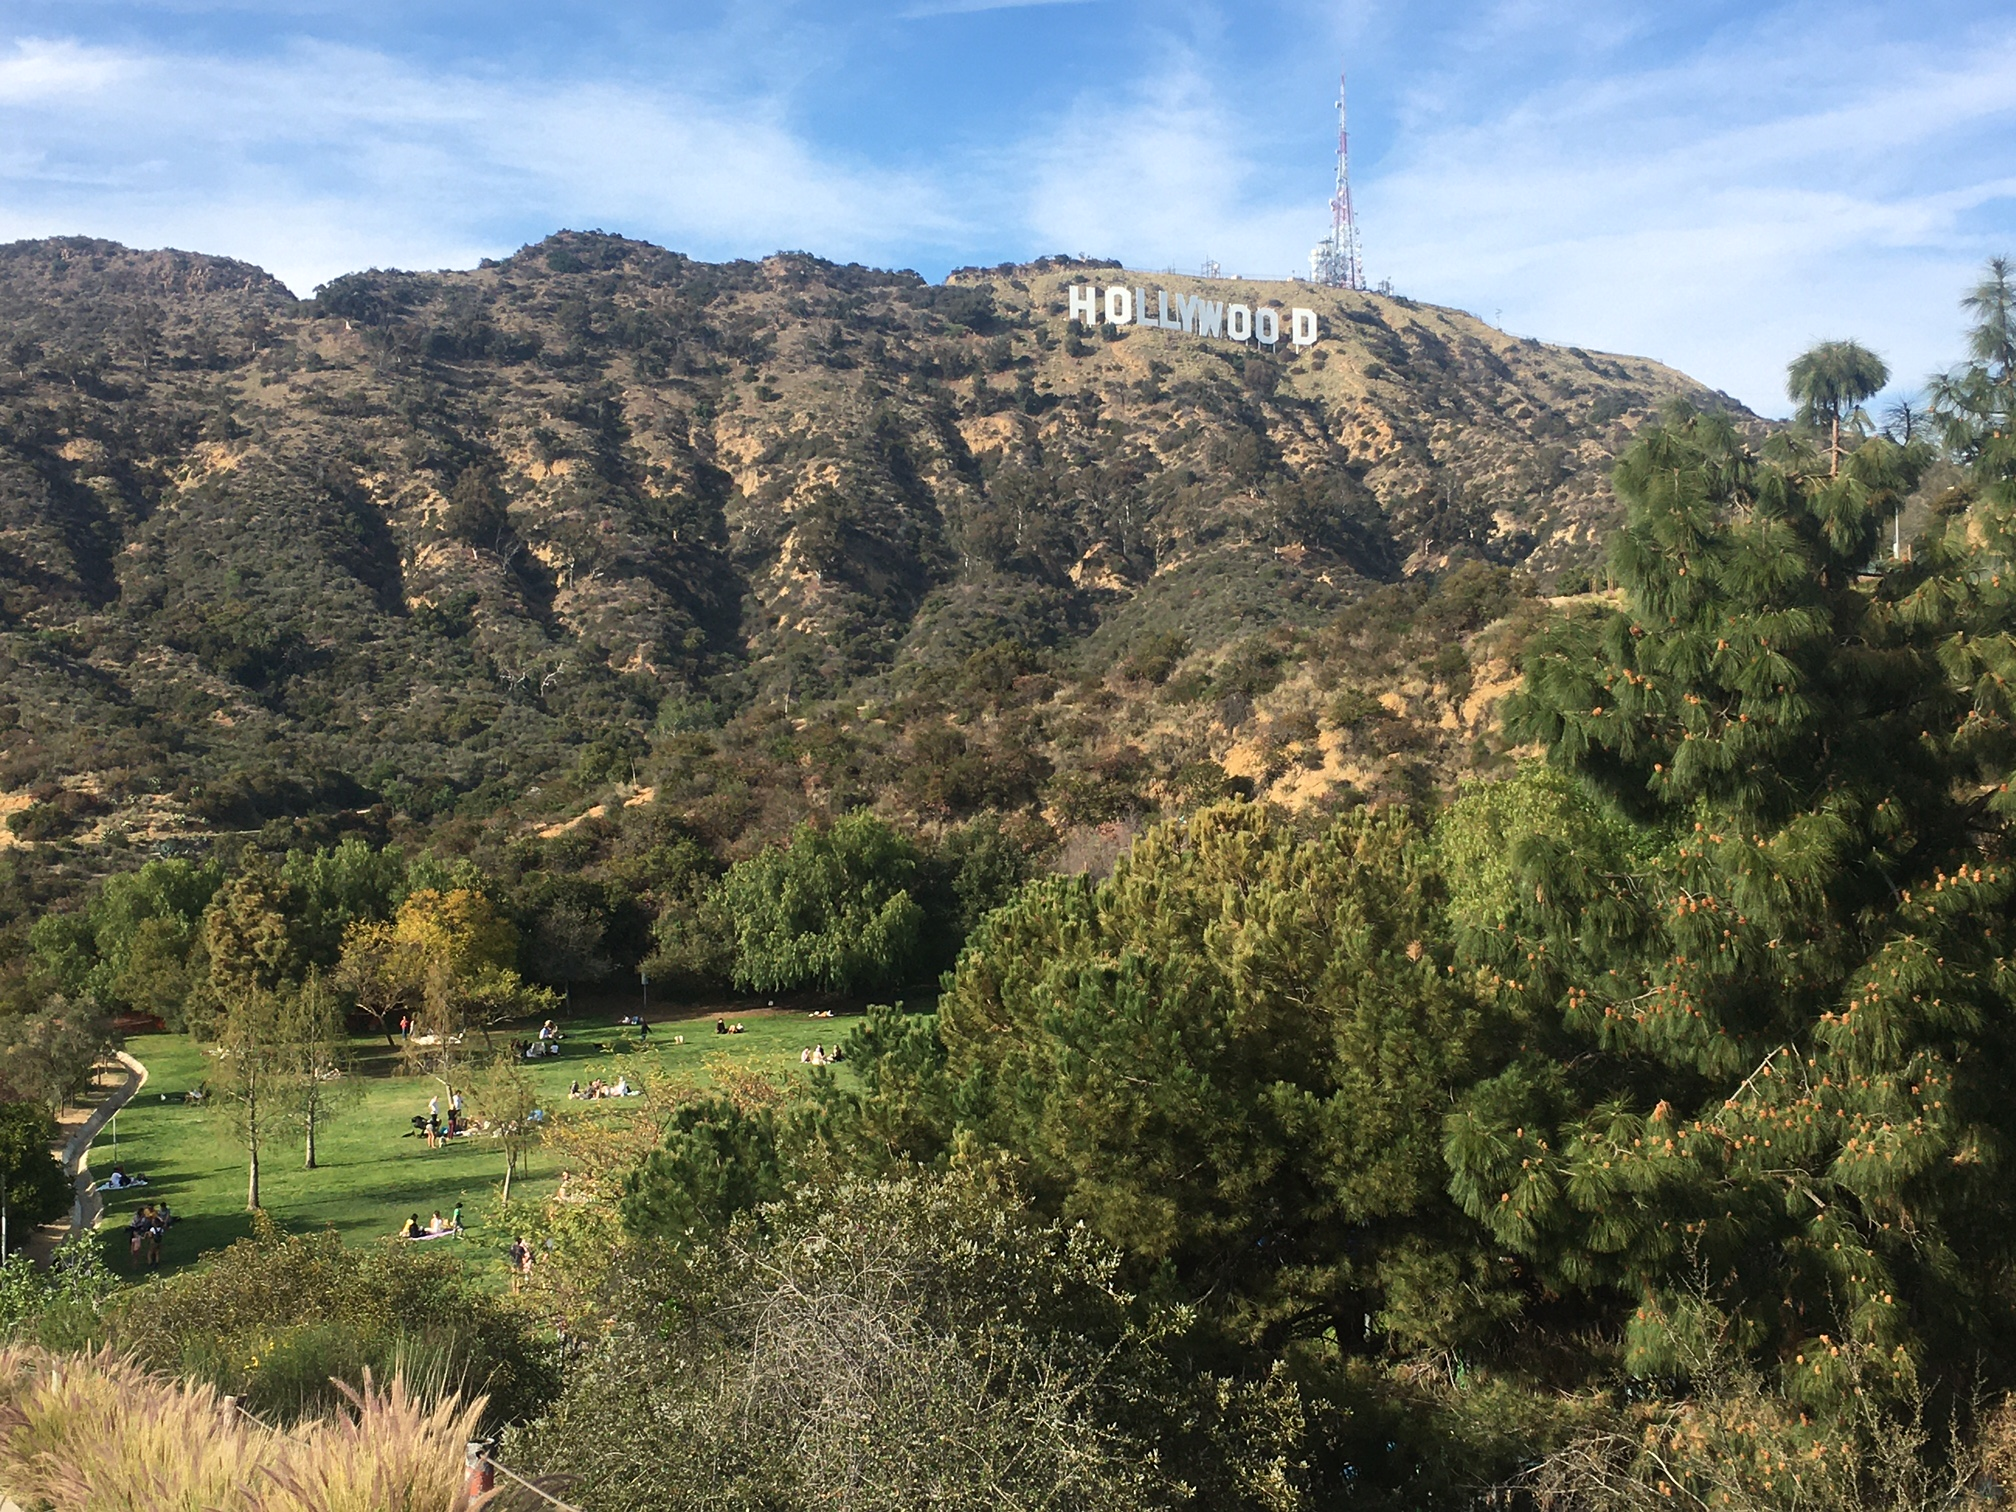 View of Hollywood Sign from Hollywood Lake Park